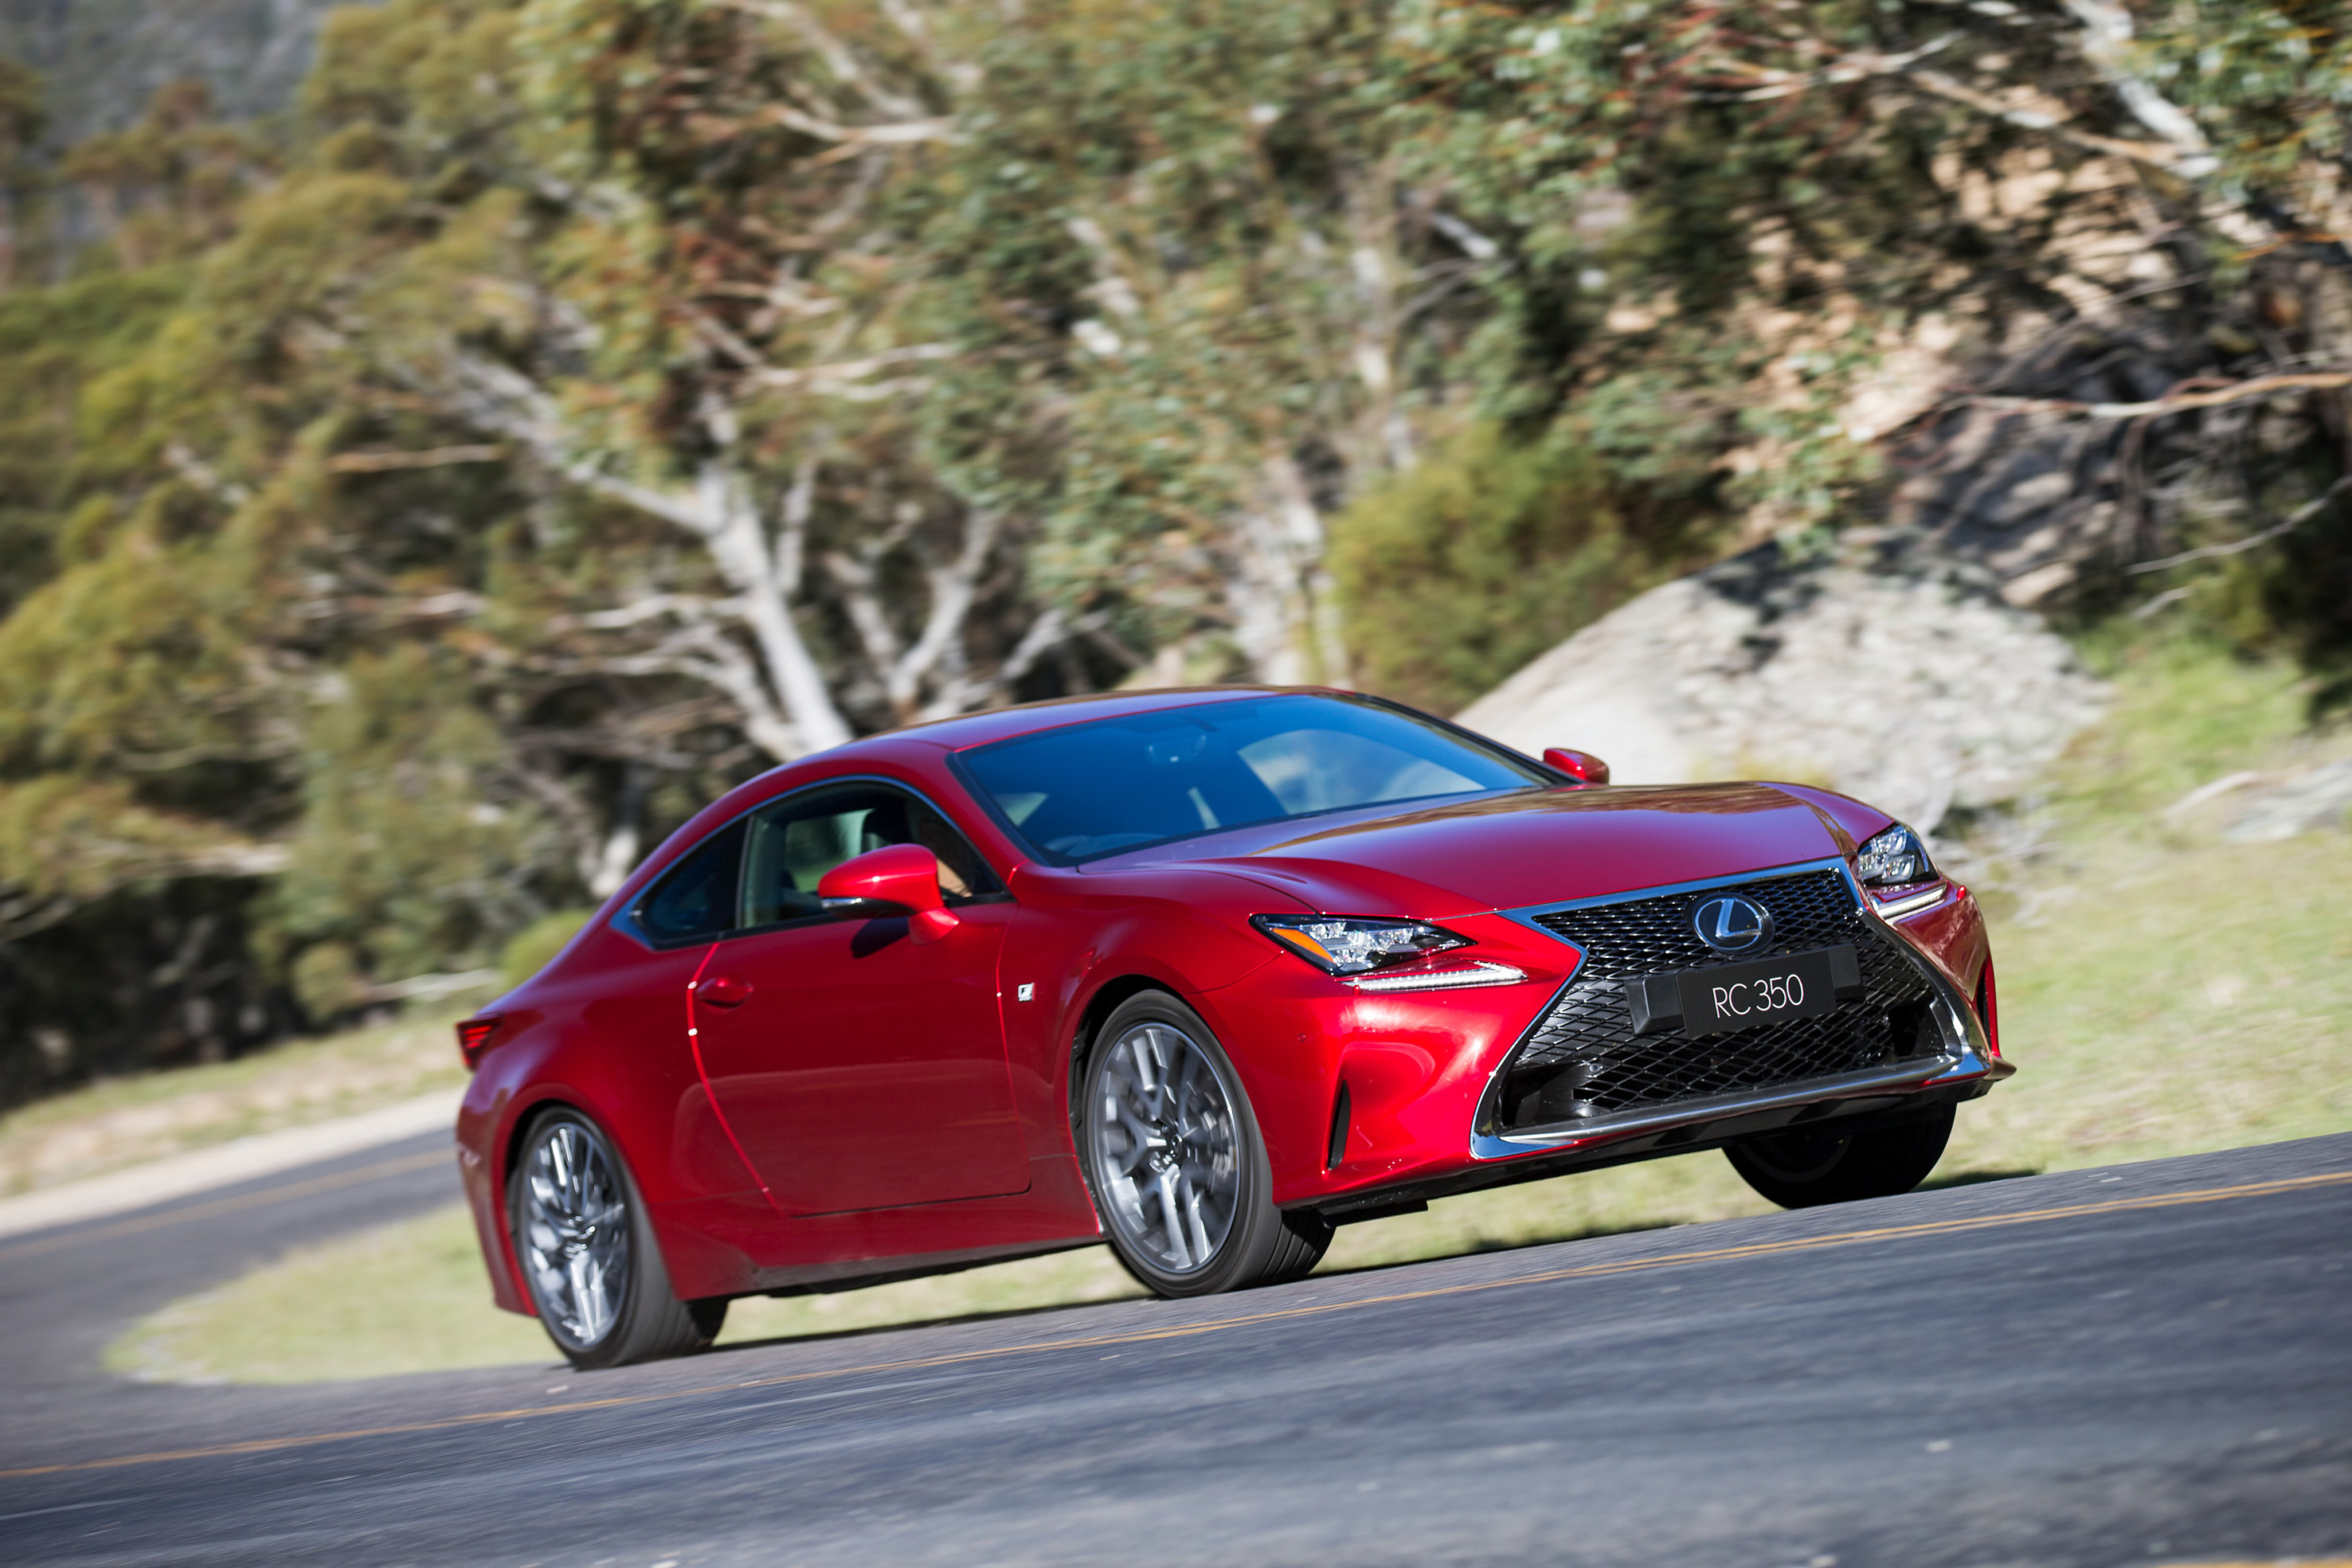 review lexus rc 350 review and first drive. Black Bedroom Furniture Sets. Home Design Ideas